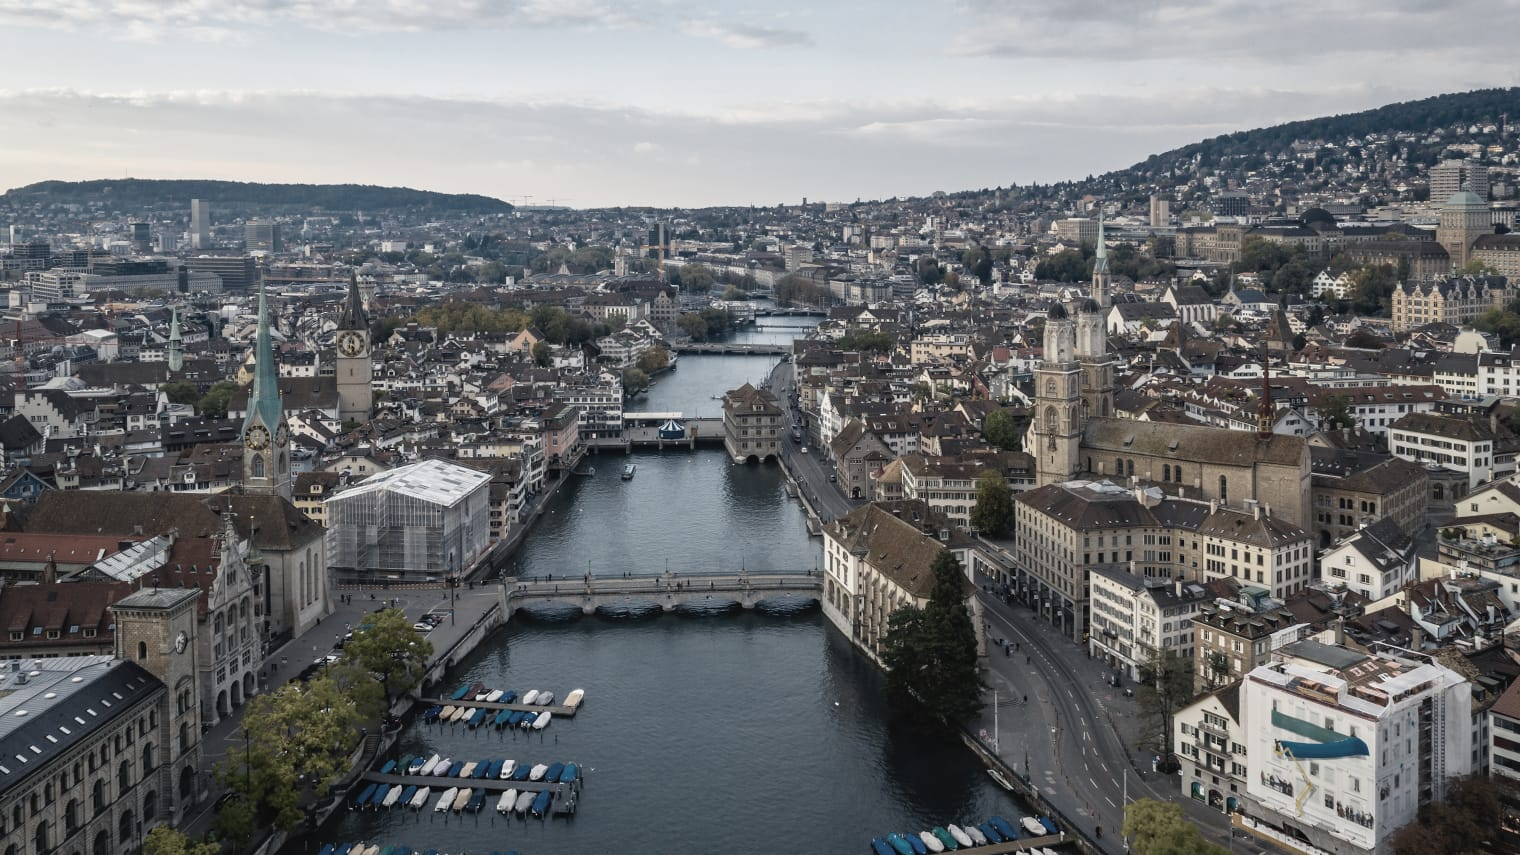 Bird's eye view of Zurich and the Limmat.